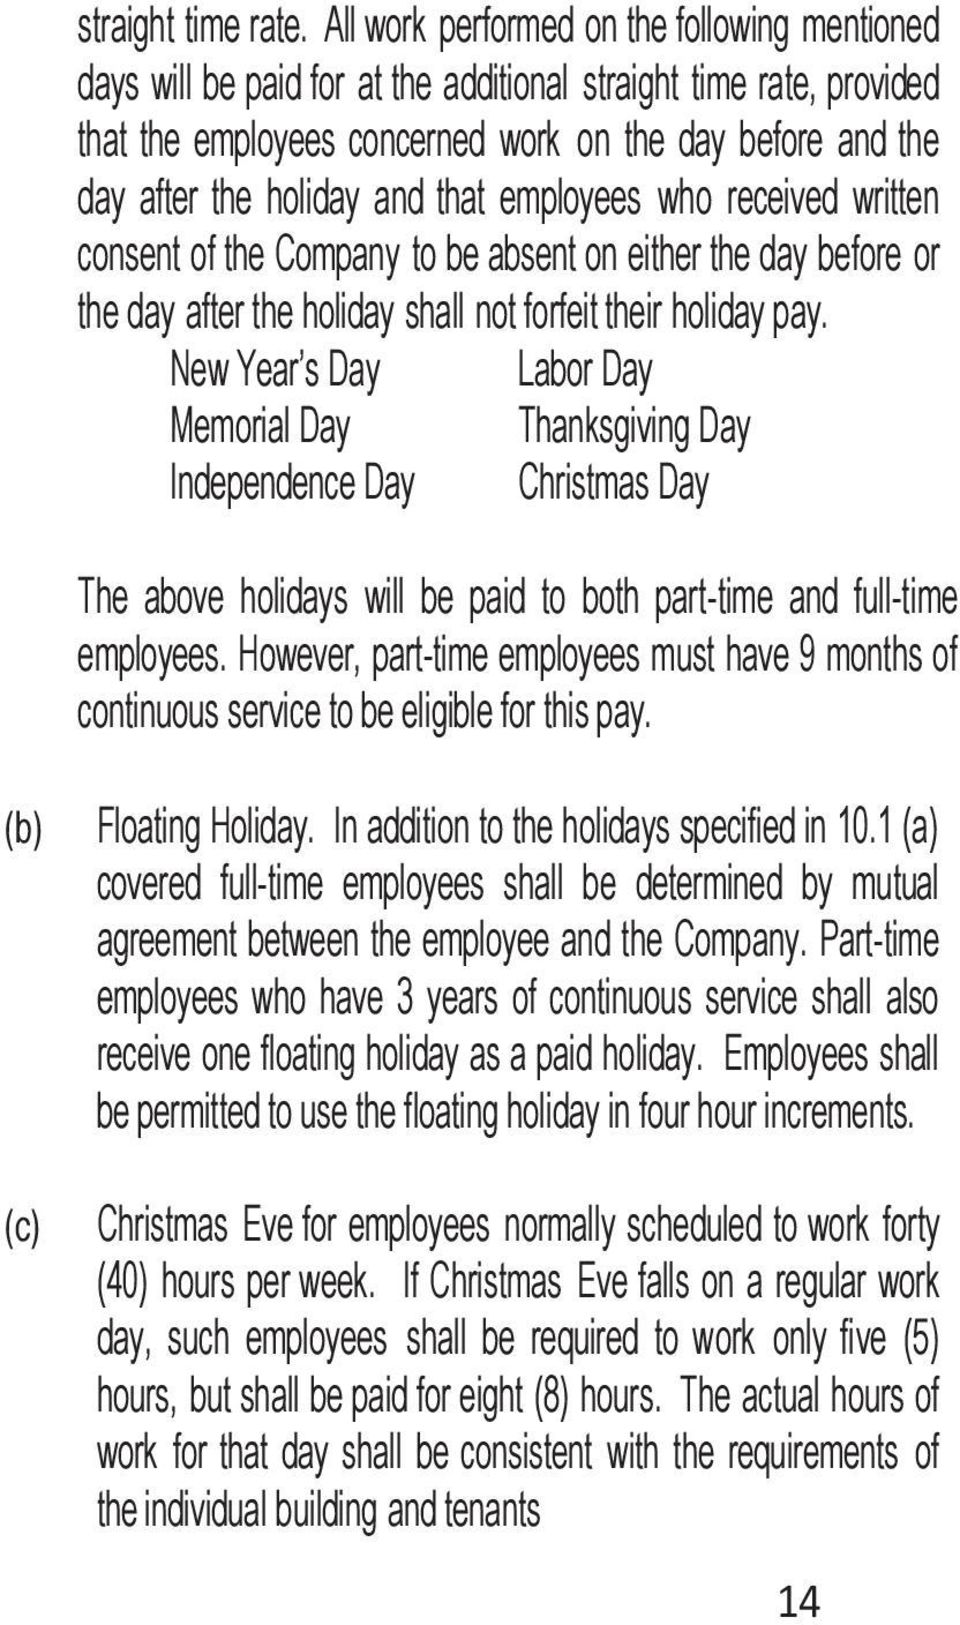 and that employees who received written consent of the Company to be absent on either the day before or the day after the holiday shall not forfeit their holiday pay.